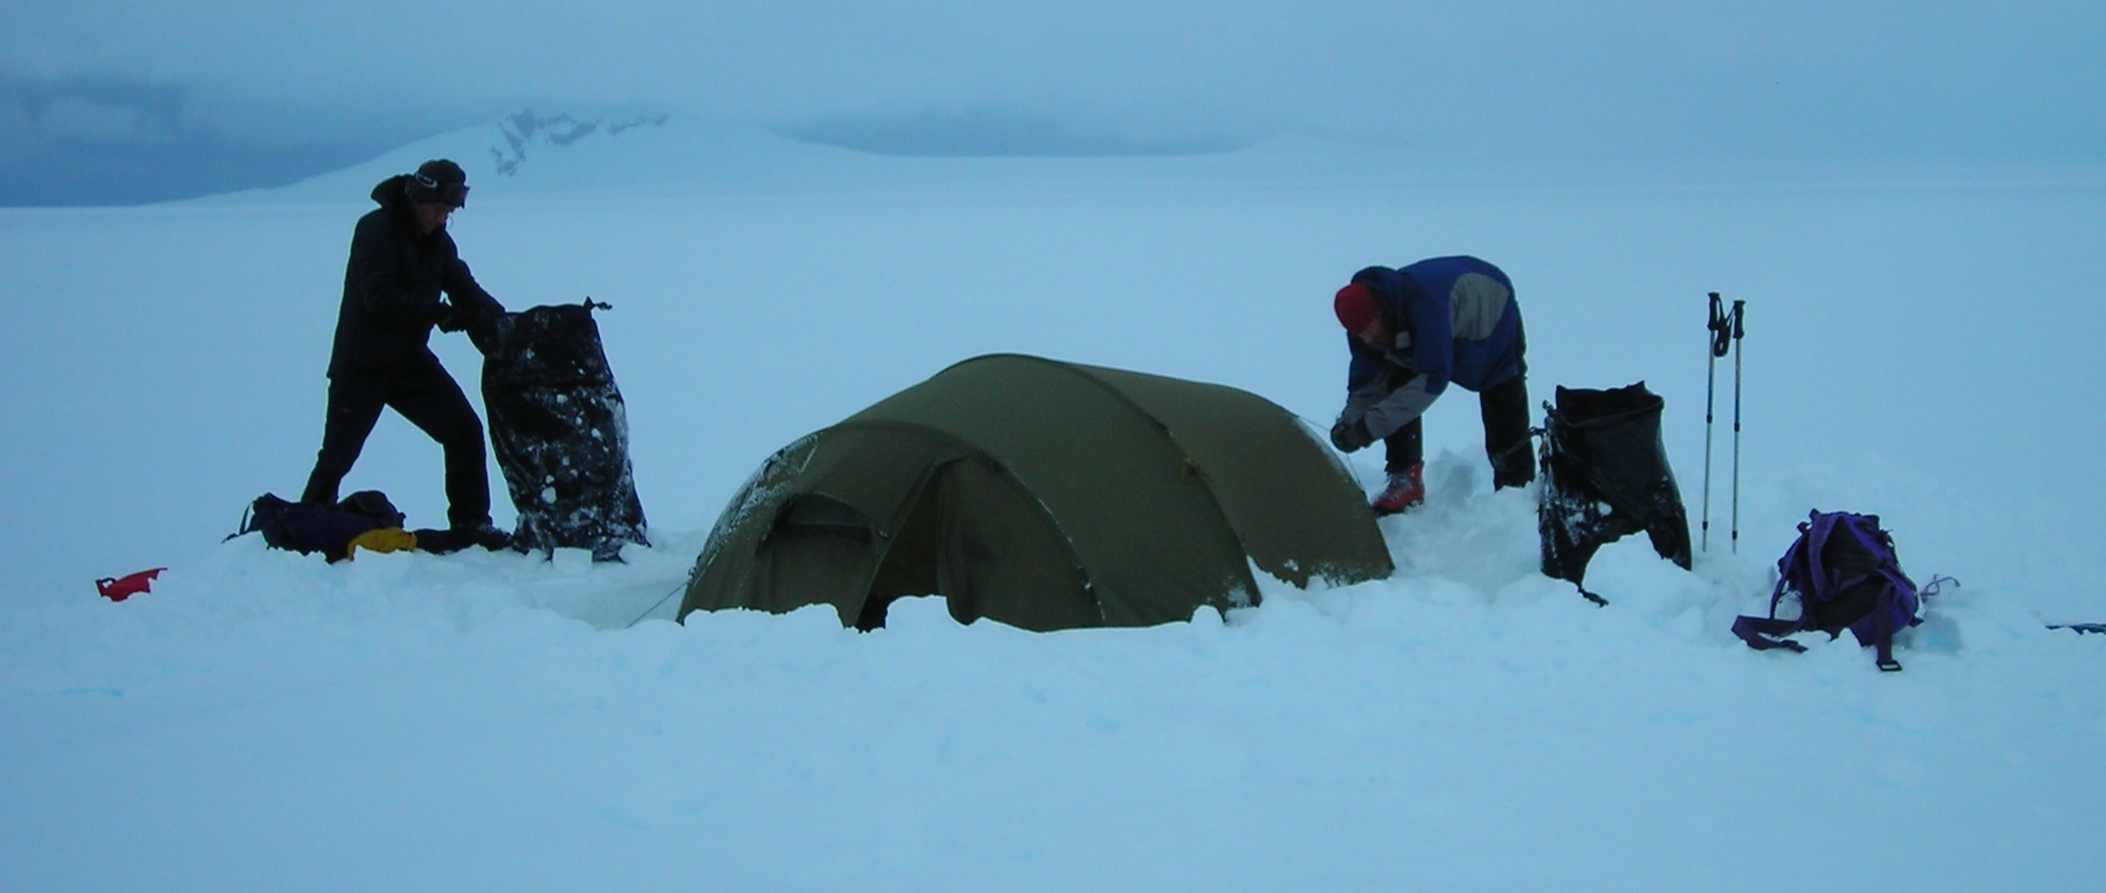 33 Digging out the tent